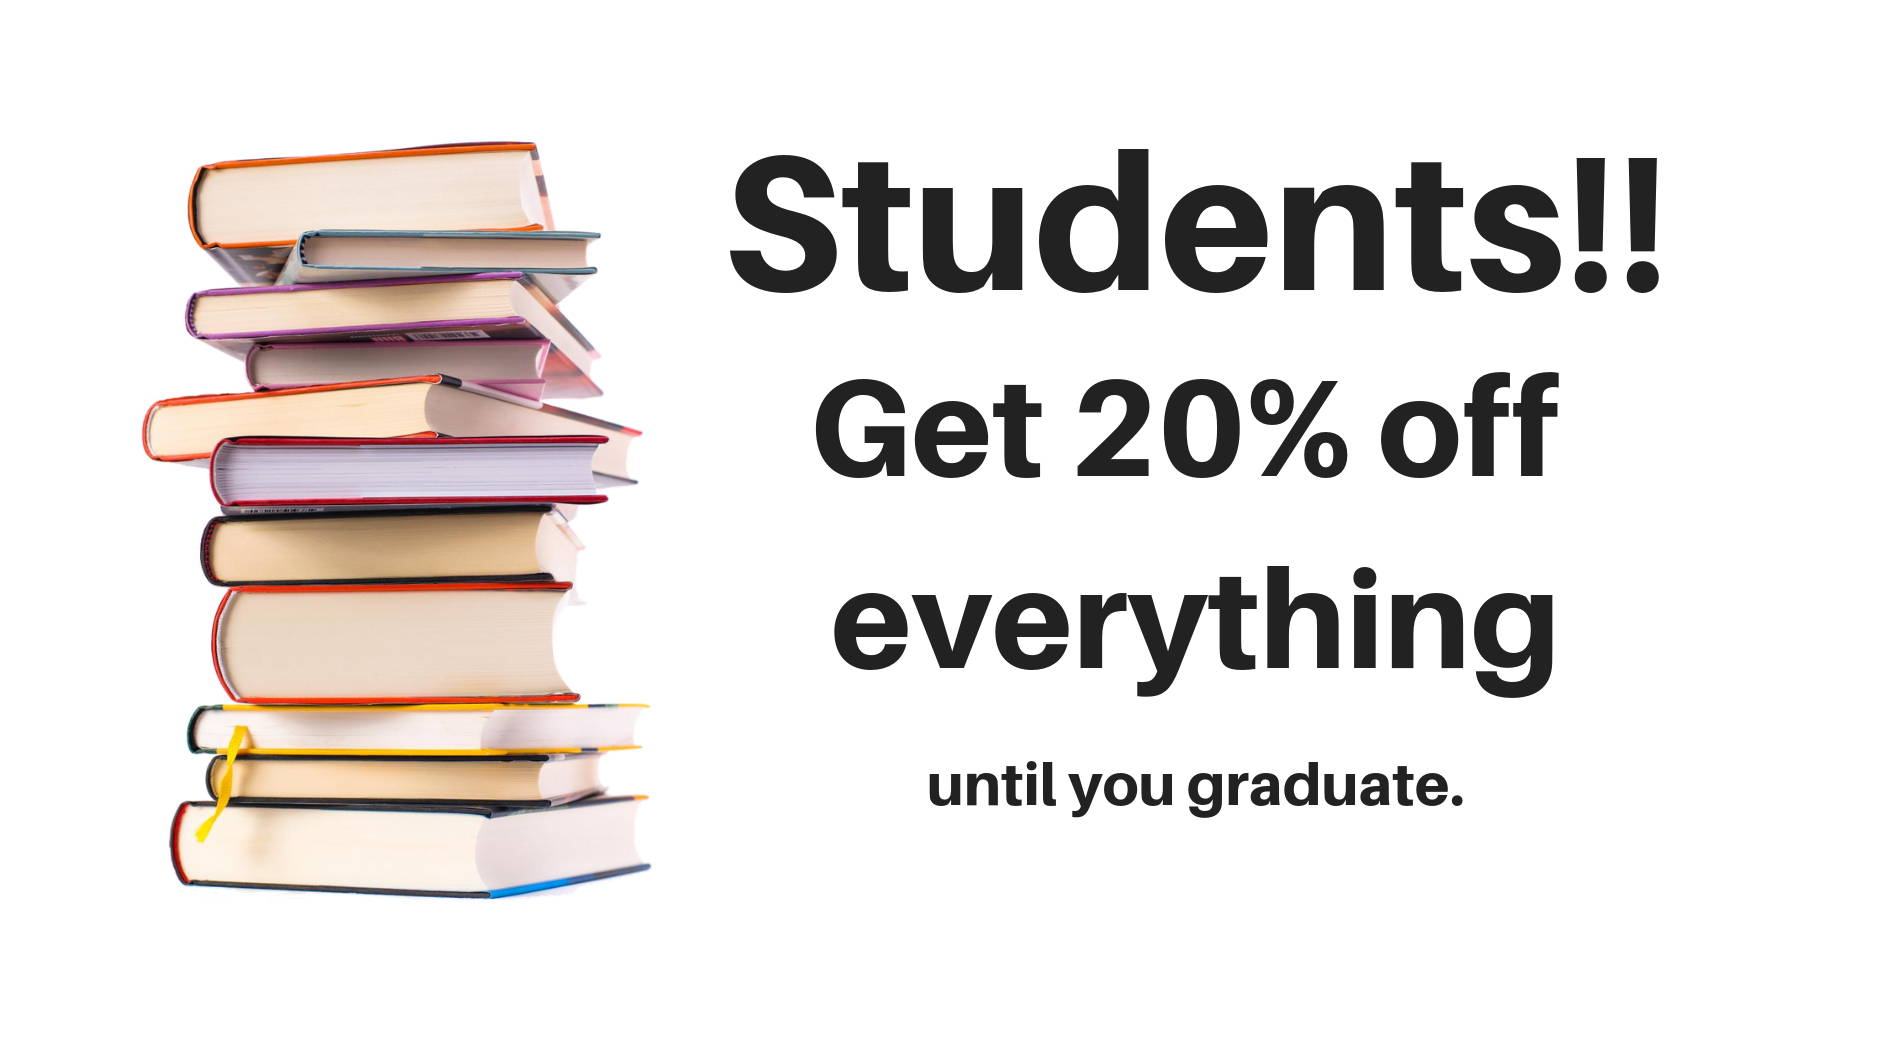 Students!! Get 20% off everything until you graduate.